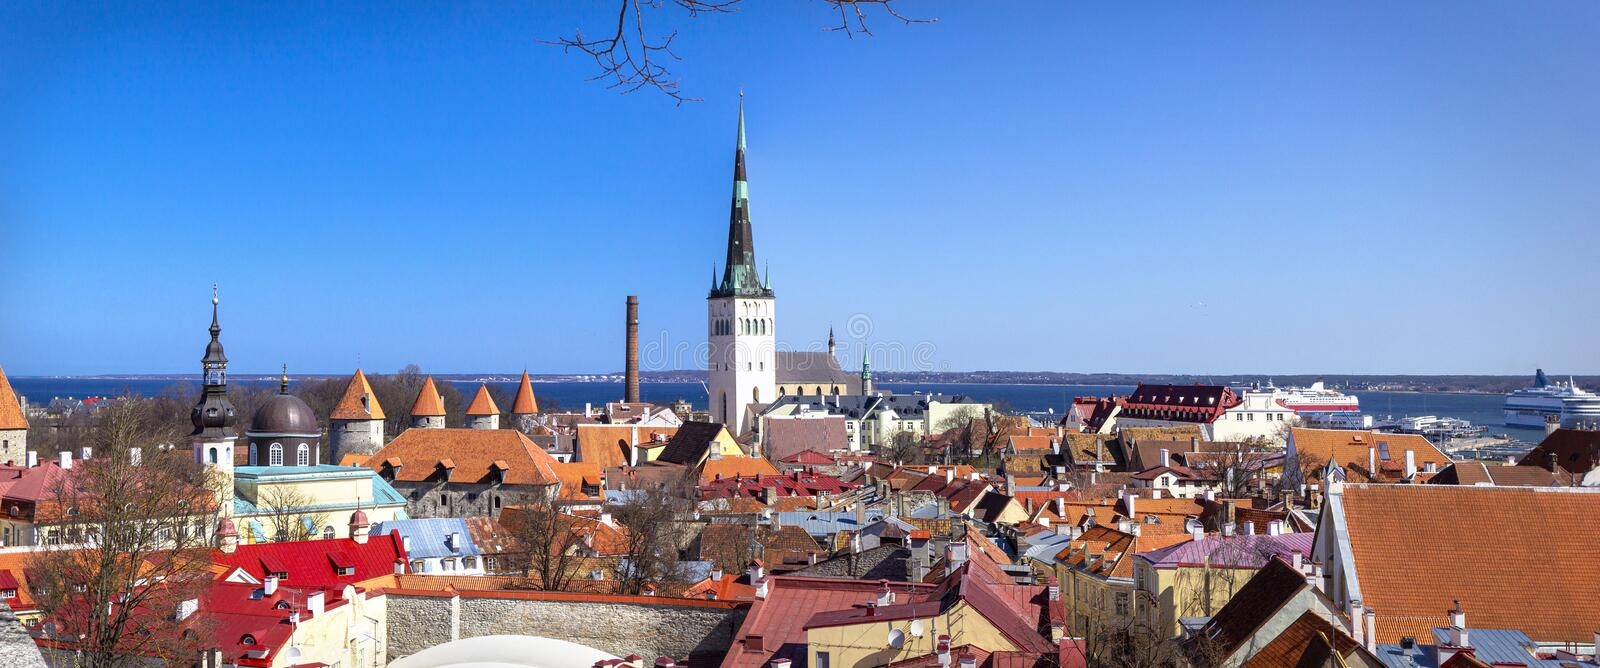 Panoramic view, aerial skyline of Old City Town, Toompea Hill, architecture, roofs of houses and landscape, Tallinn, Estonia. Summer cityscape banner royalty free stock photos